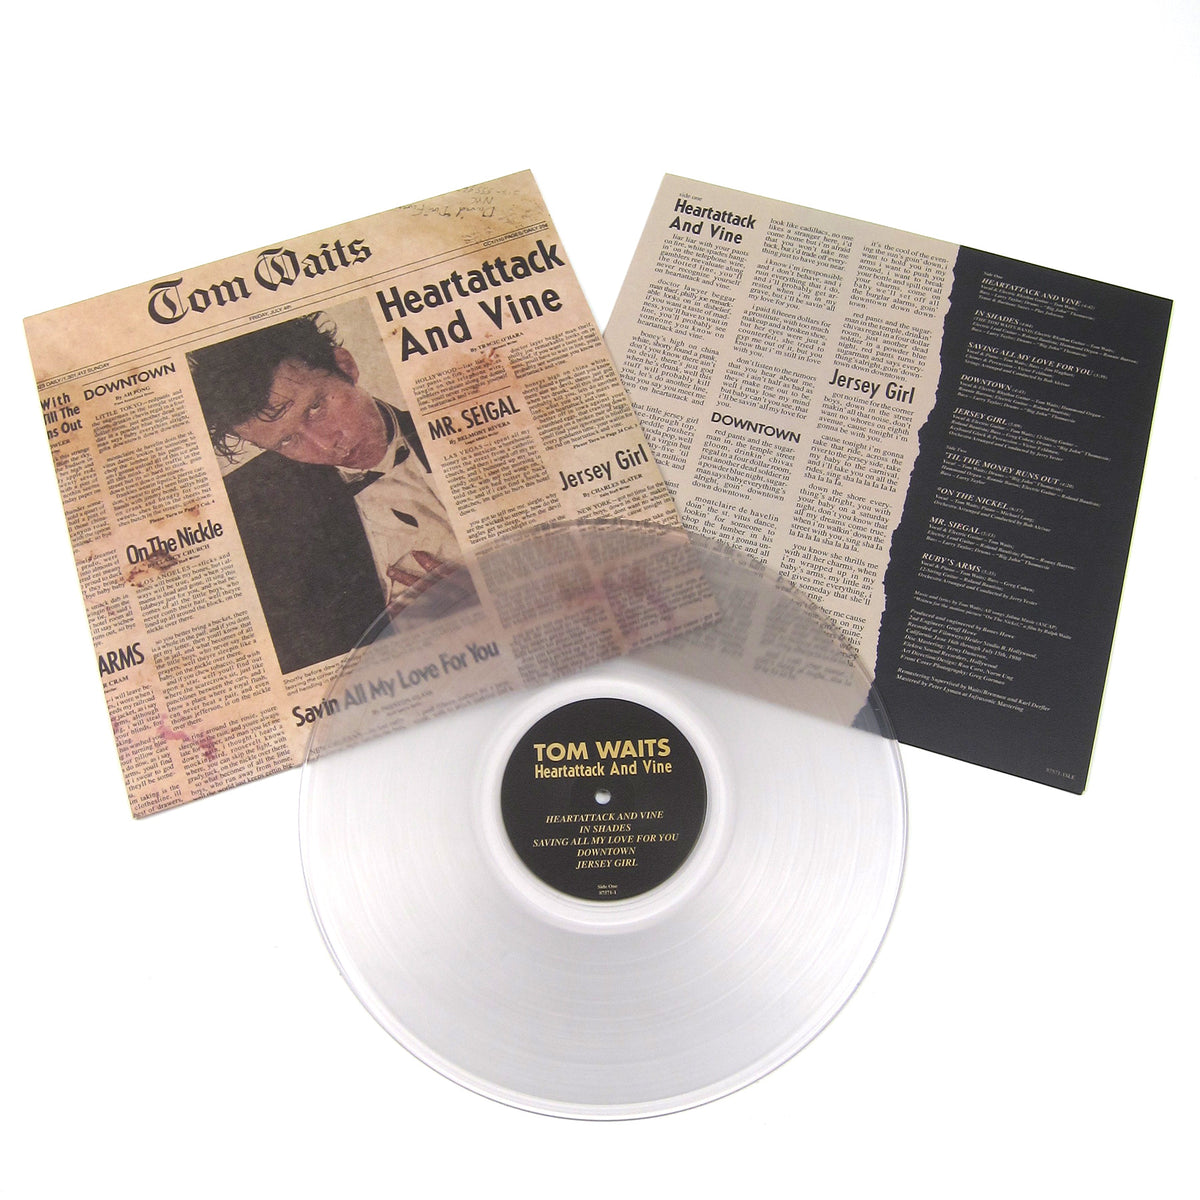 Tom Waits: Heartattack And Vine (180g, Clear Colored Vinyl) Vinyl LP